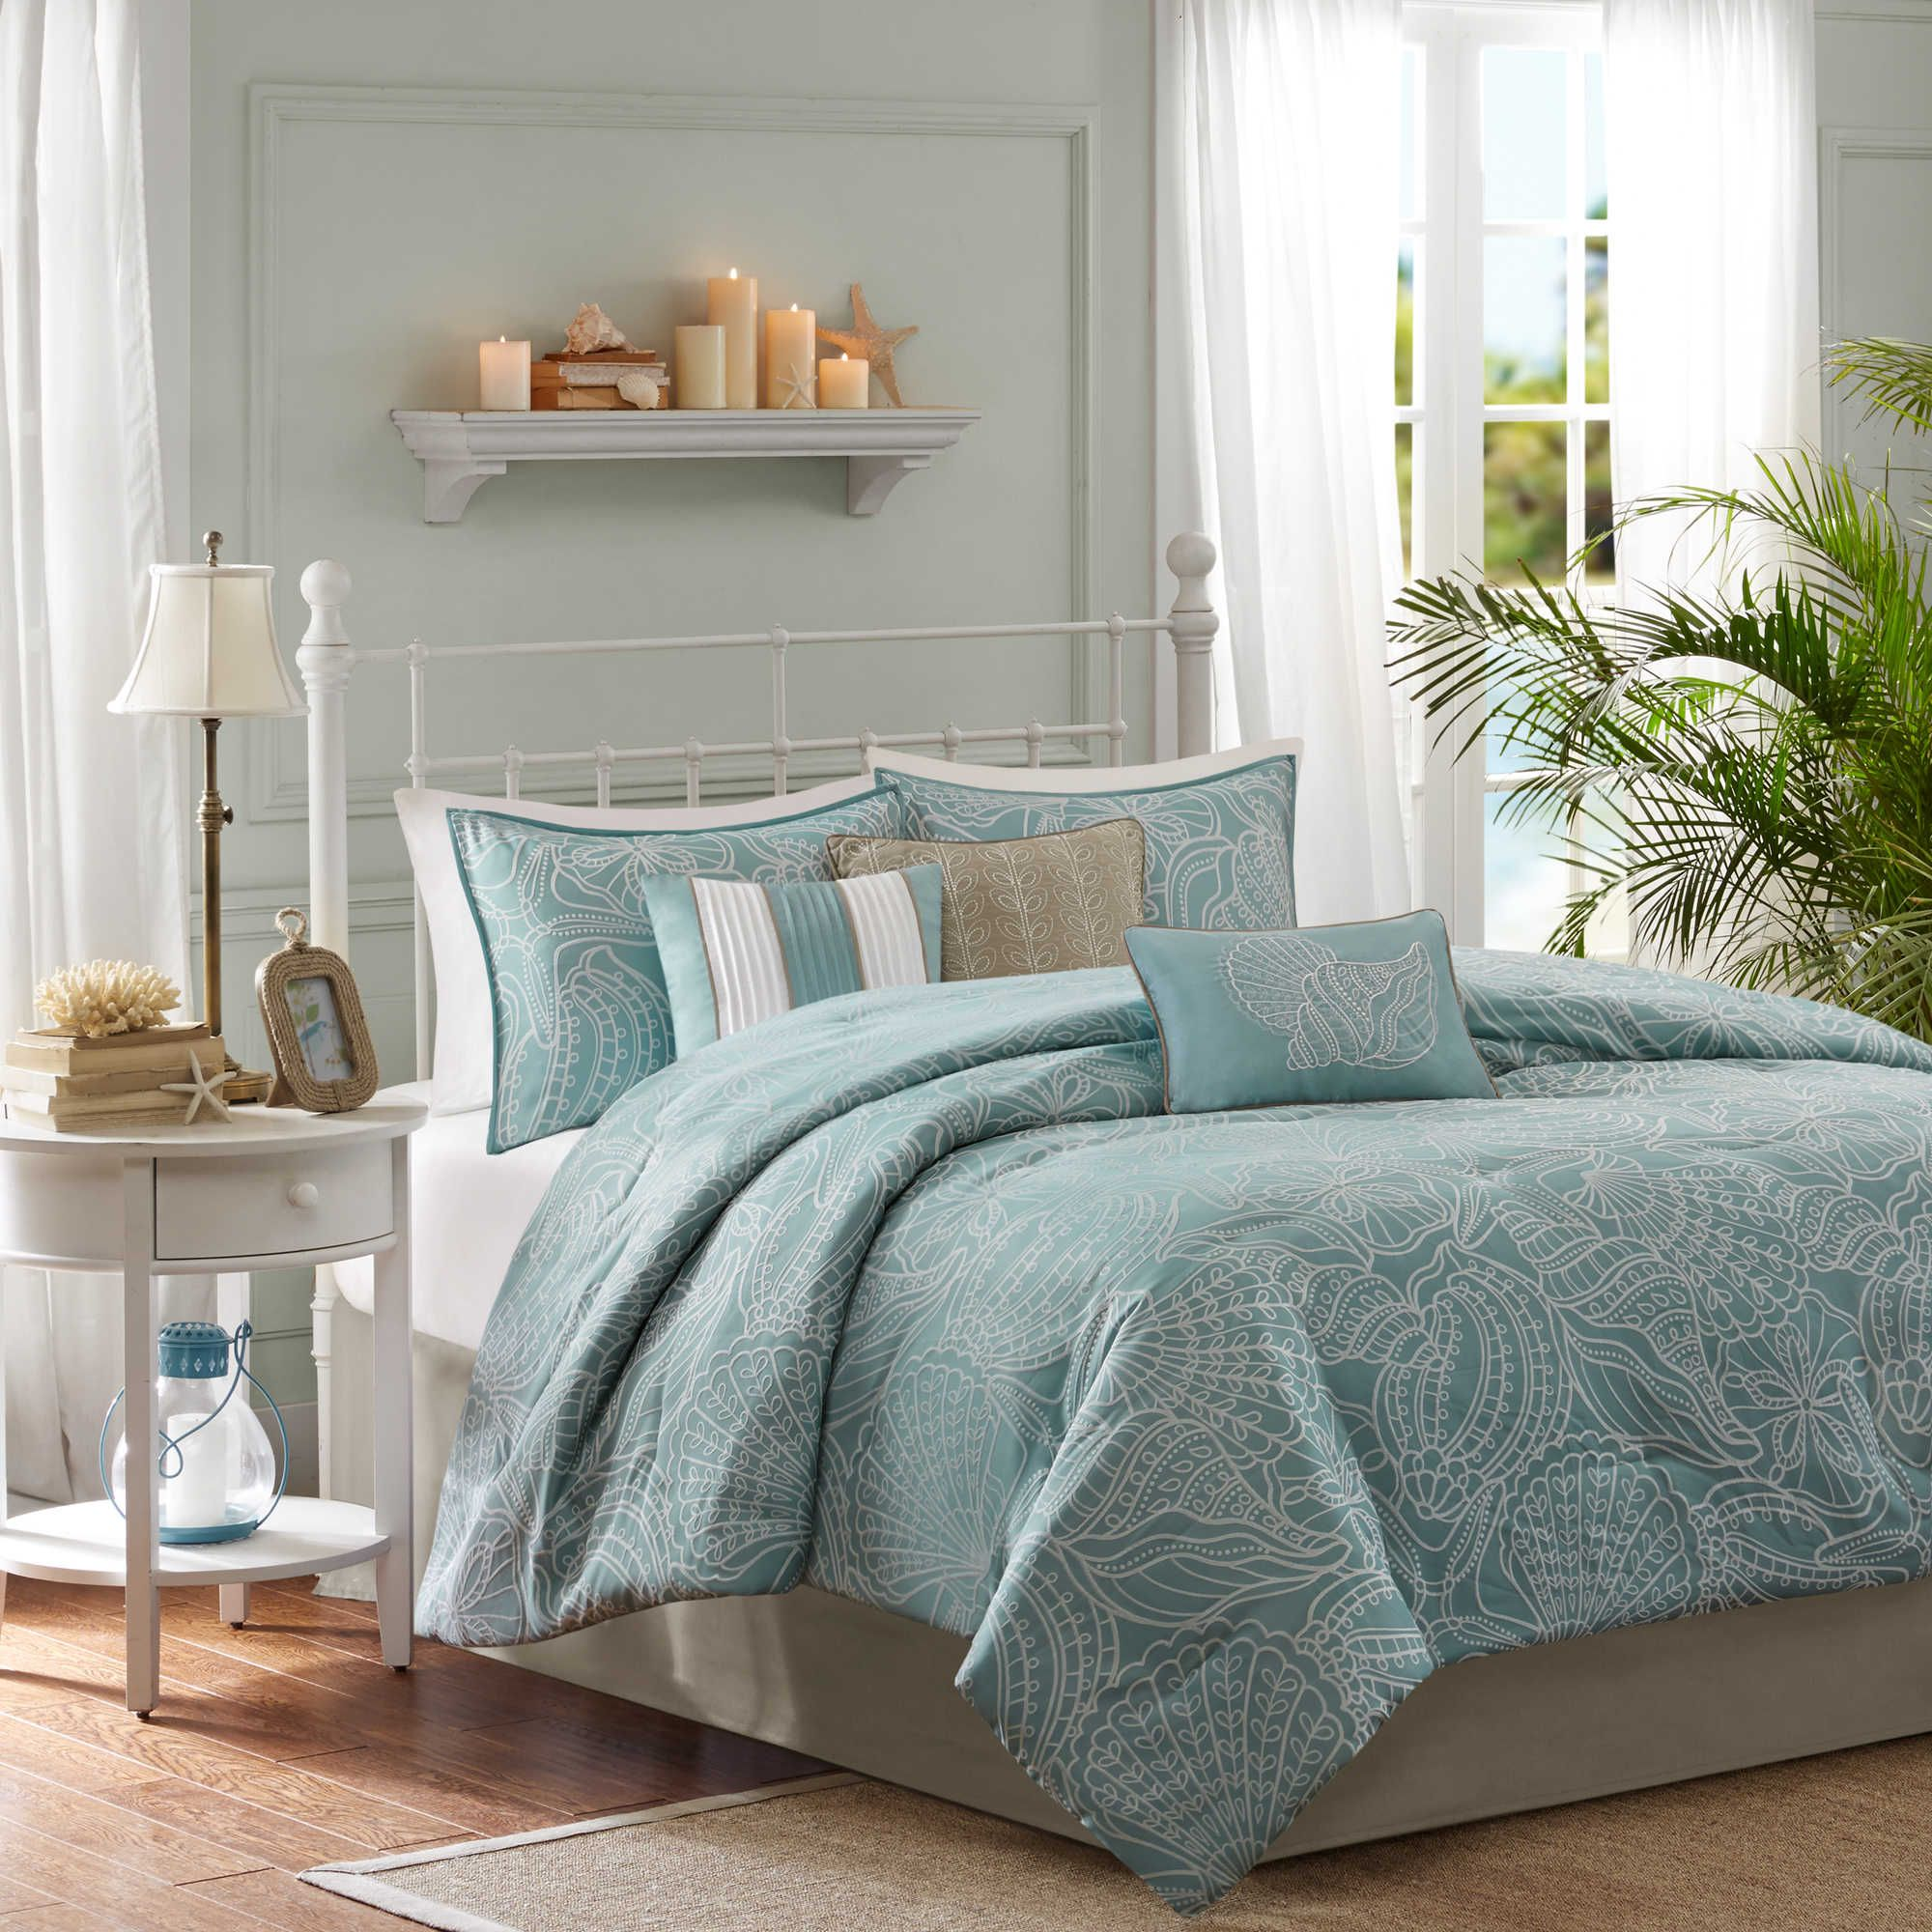 bedspreads class beach using upscale coastal nautical comforter bedding decor trellis and dreamy calm comforters in trusty target supreme set also sets reversible touch